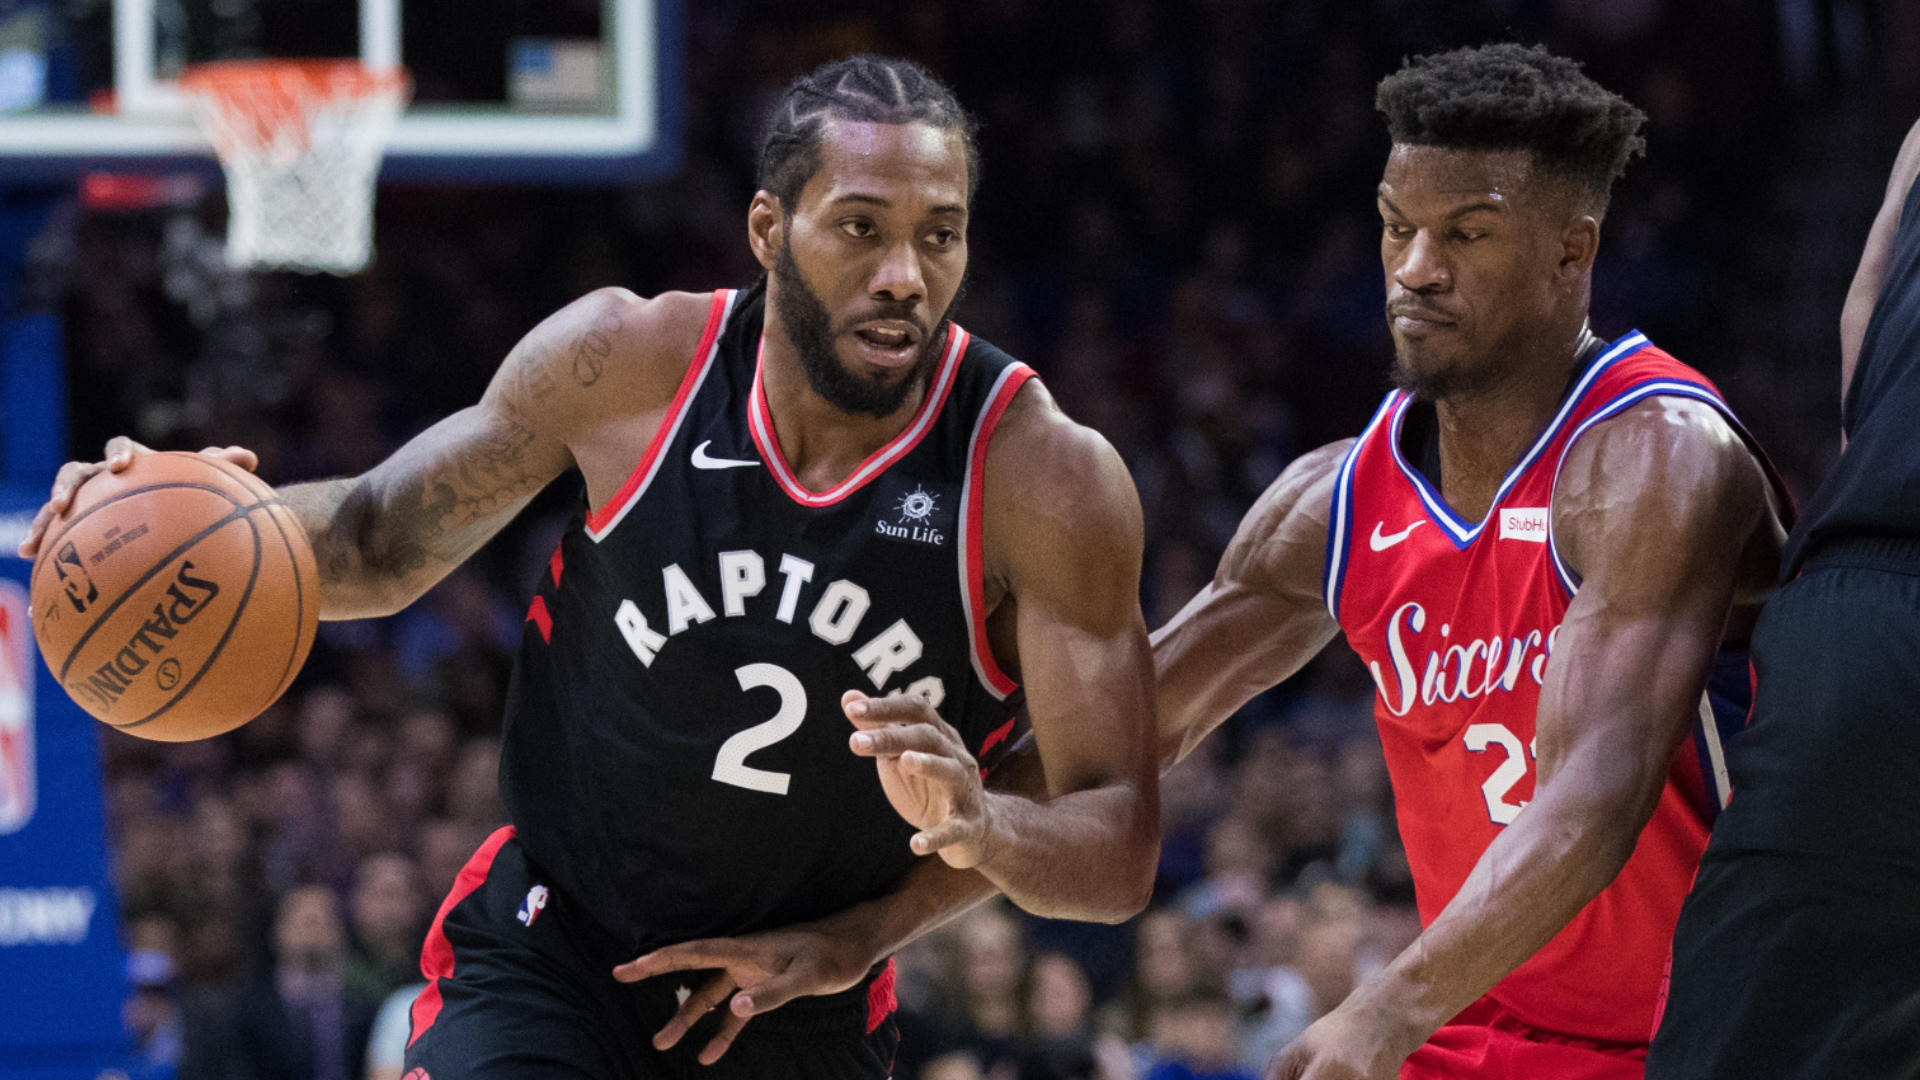 NBA odds, picks, lines, predictions, Playoffs schedule, best bets for Apr. 24: This three-way parlay pays 6-1